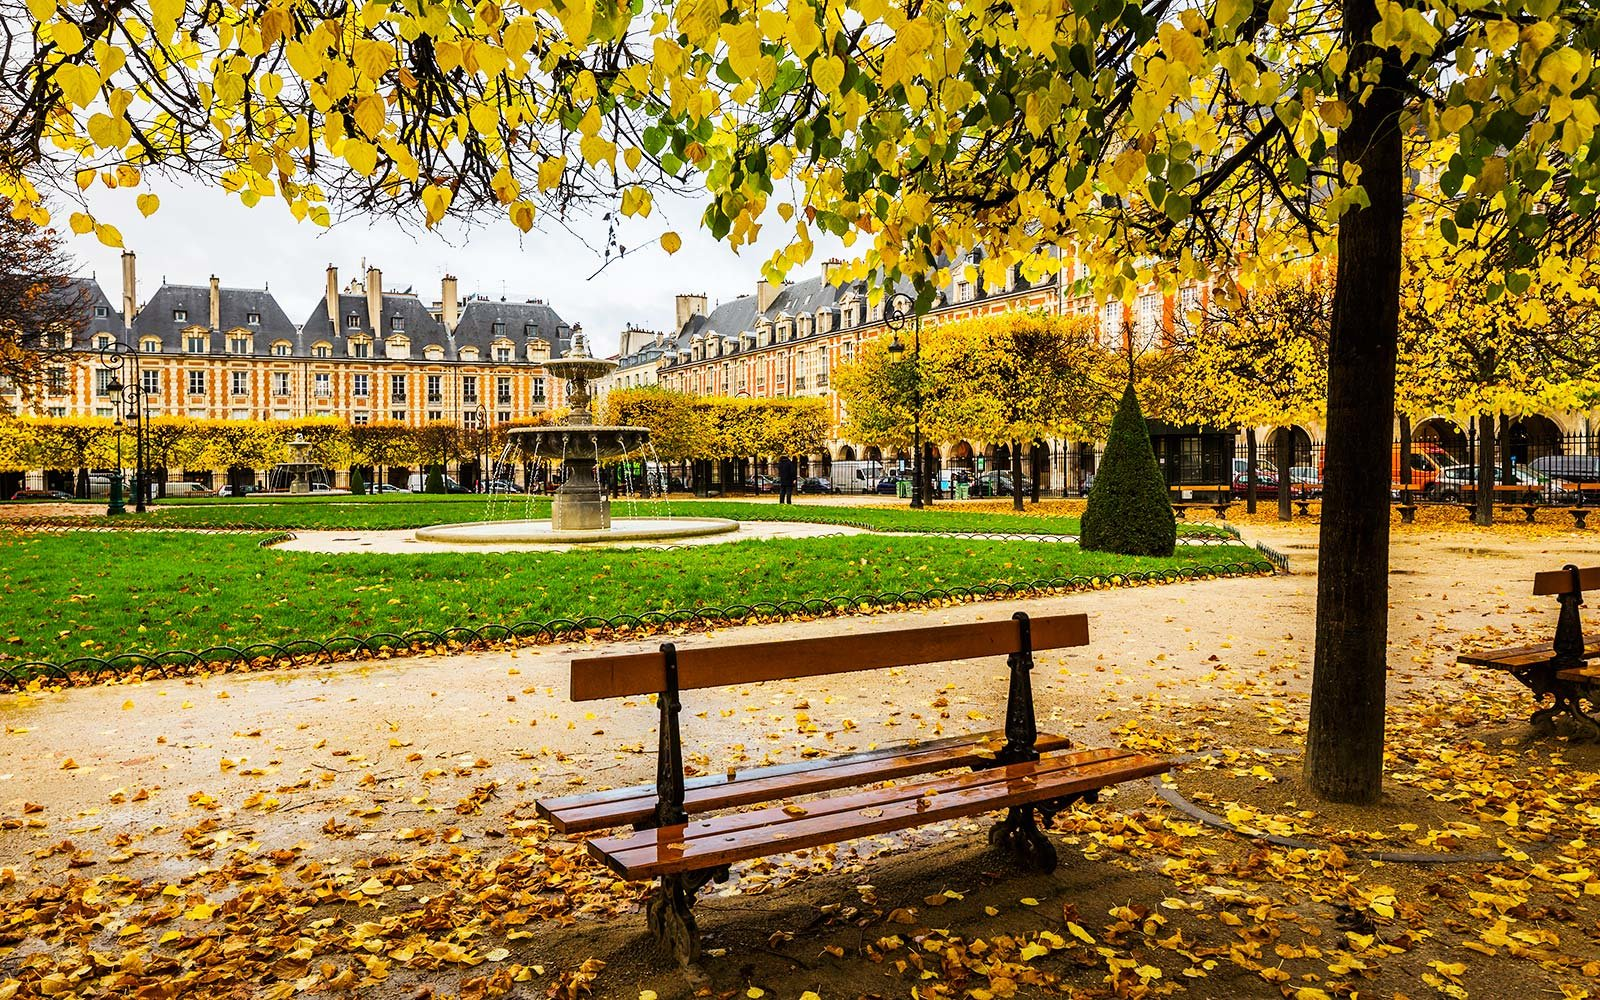 France, Île-de-France, Paris . Le Marais, Plac des Vosges in autumn